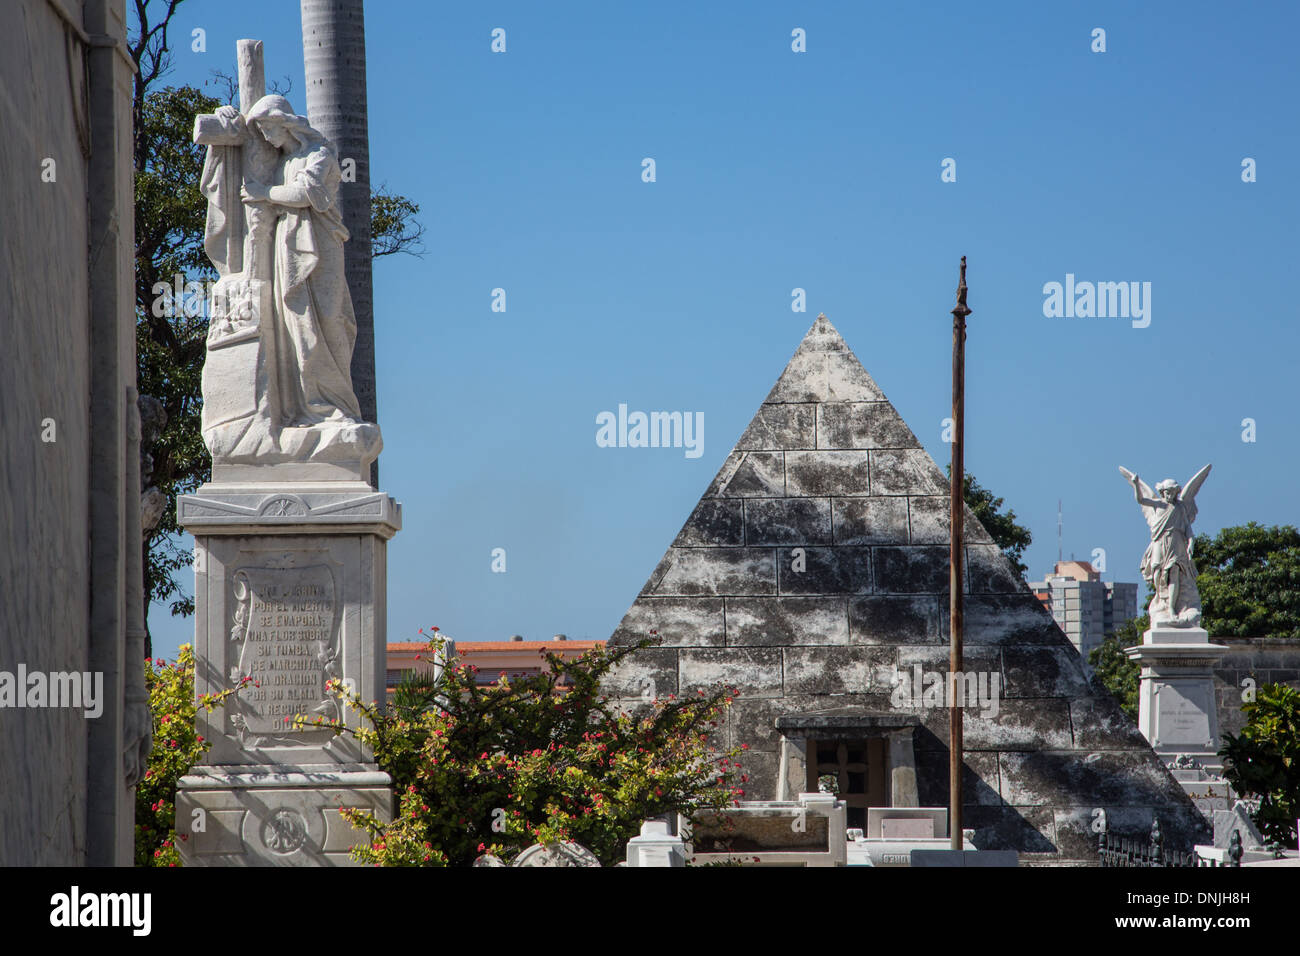 FUNERARY STELE AND PYRAMID IN THE COLON CEMETERY (CIMITERO), ONE OF THE BIGGEST CEMETERIES IN THE WORLD, VEDADO QUARTER, HAVANA, CUBA, THE CARIBBEAN - Stock Image